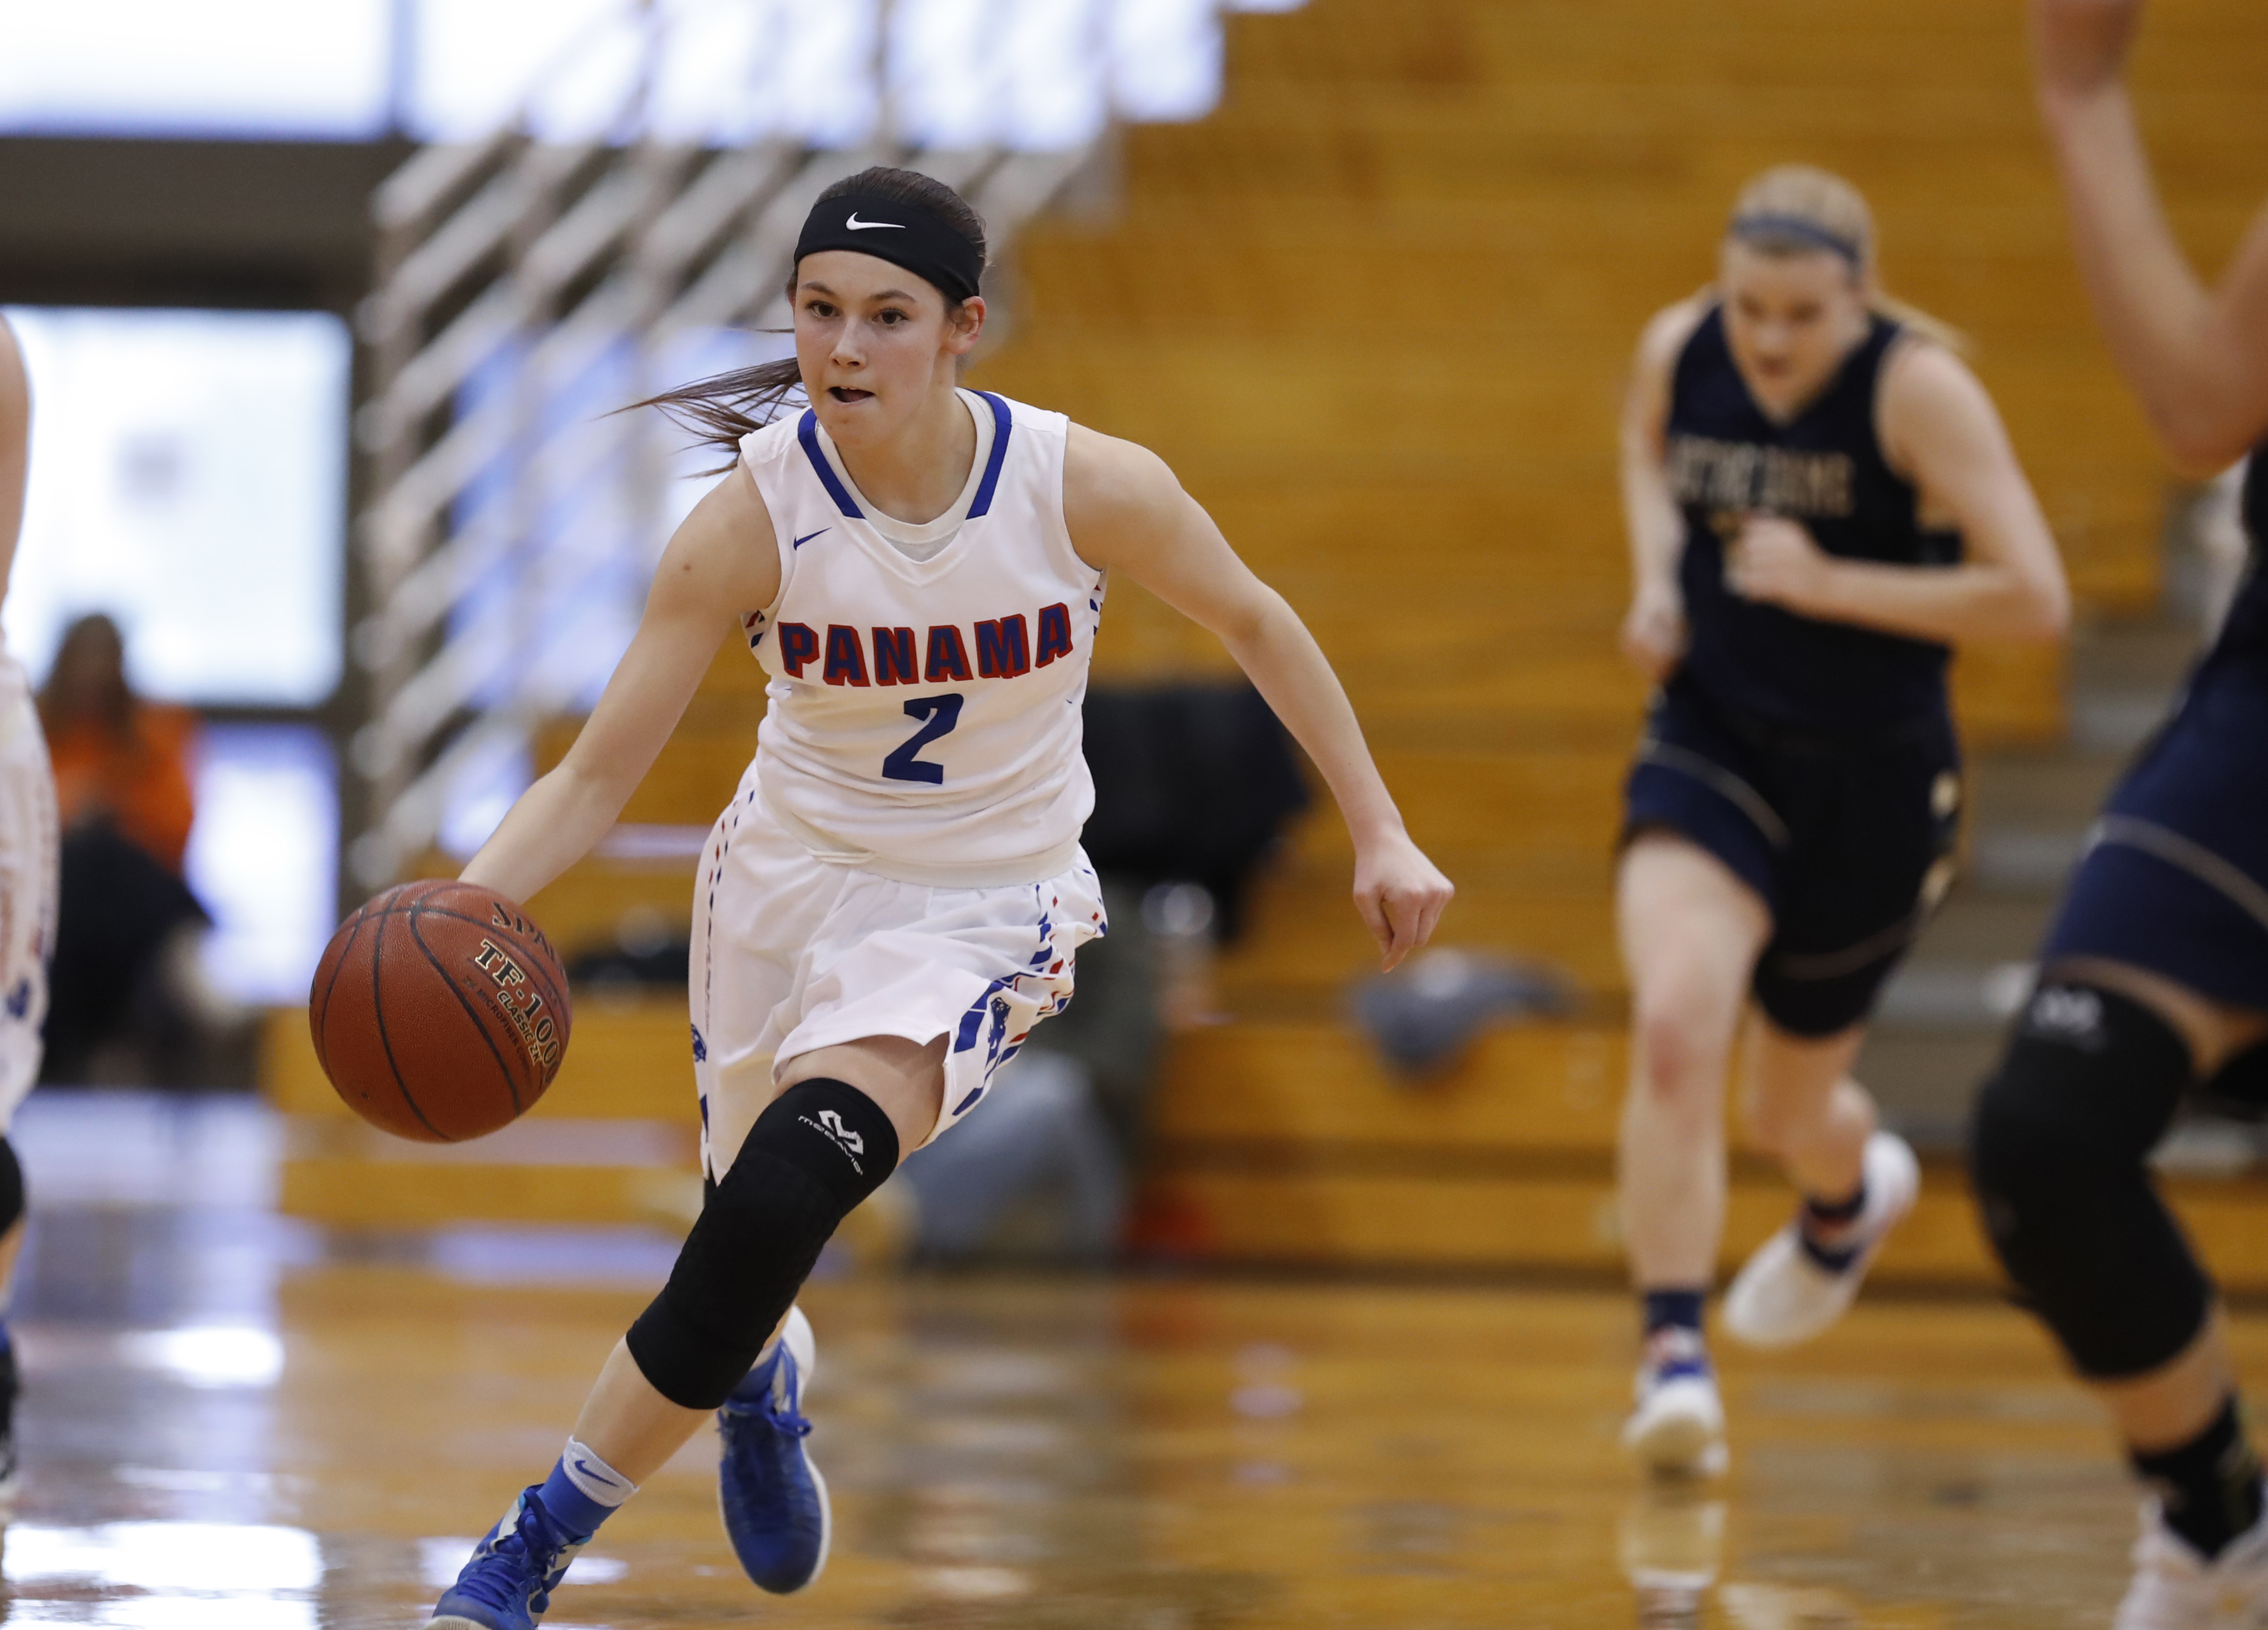 Tara Sweeney has moved from a sixth-person role to starter in helping Panama reach its third straight New York State Public High Schools Athletic Association final four. (Harry Scull Jr./Buffalo News)